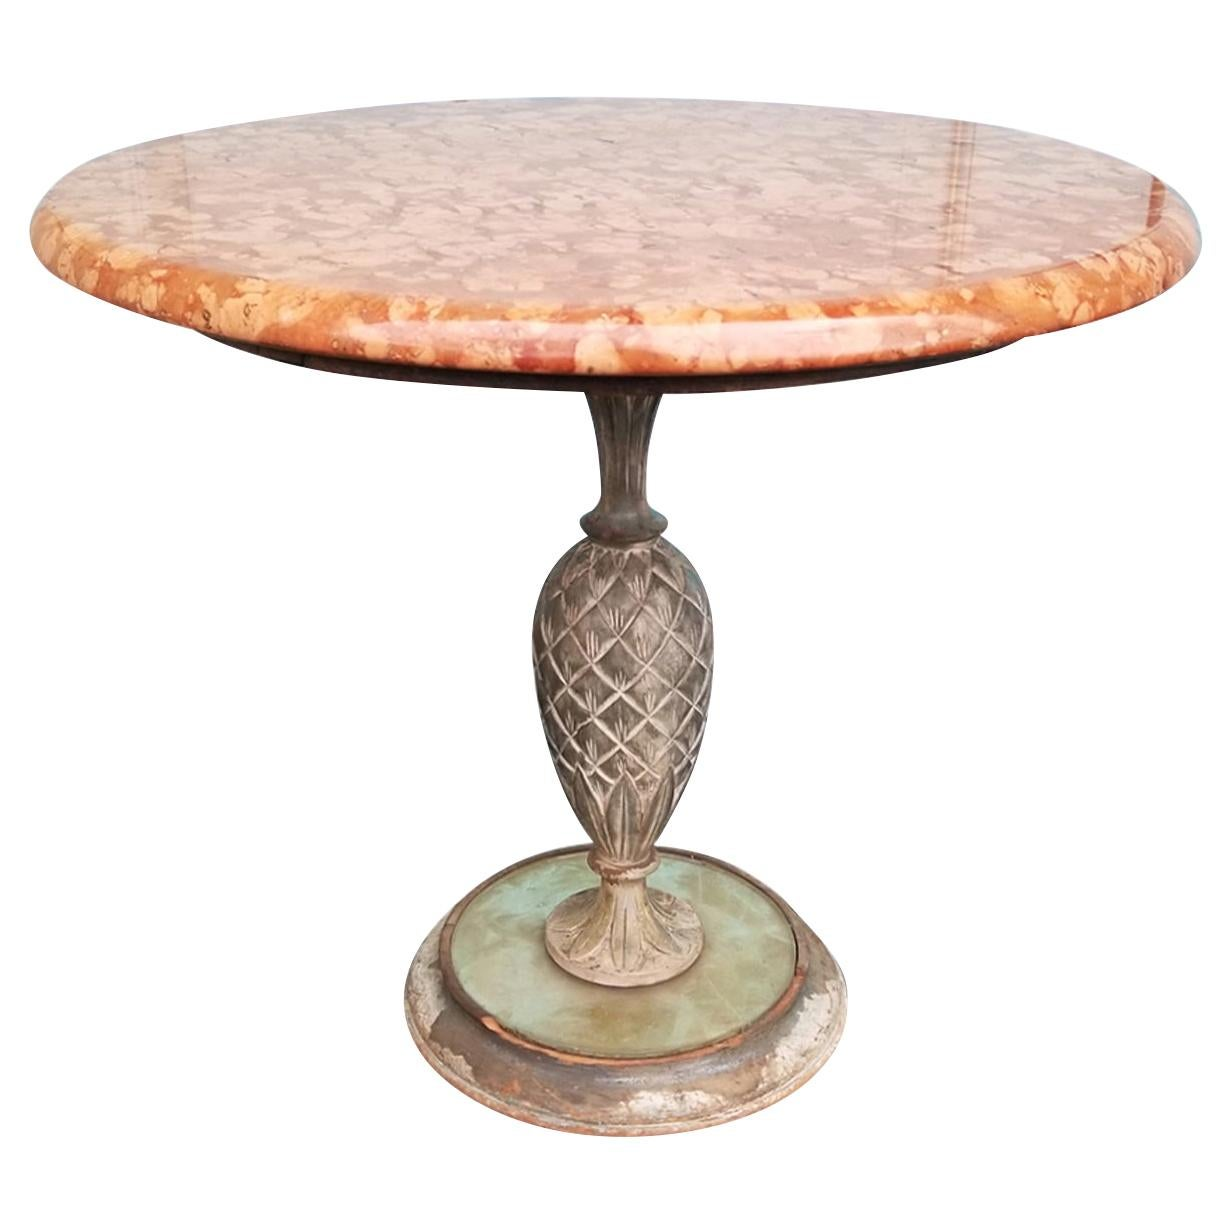 Mid-20th Century Marble-Top Table with Iron Pineapple Pedestal Base